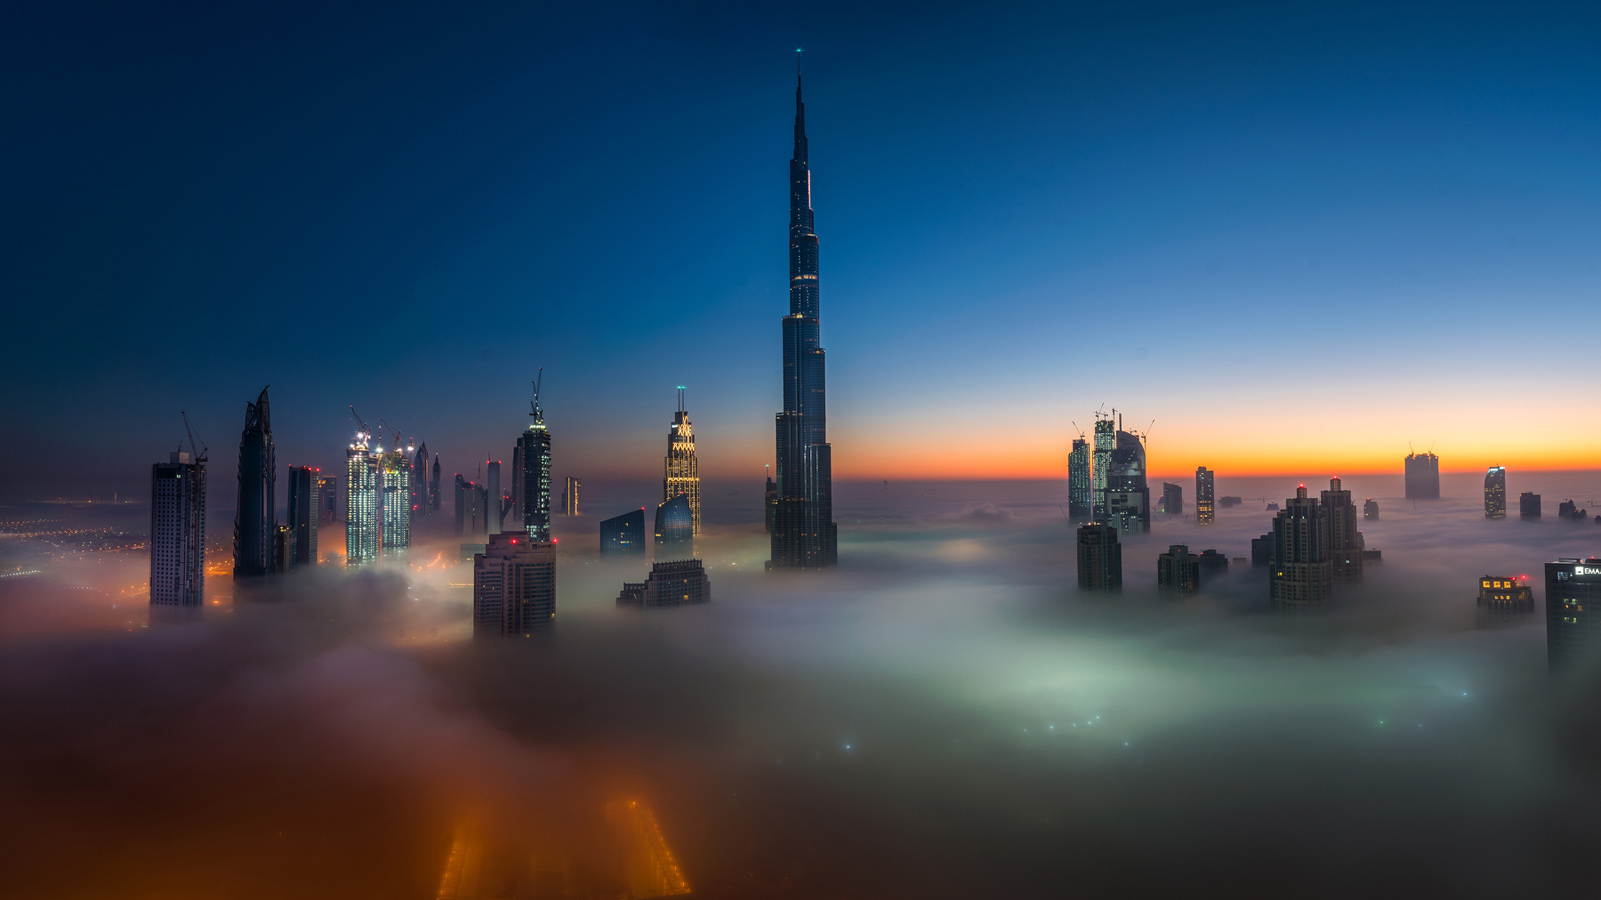 Foggy Blanket, © Prakash Kumar Singh, UAE, Urban landscape Nomination, 1 place, 35AWARDS Photo Contest